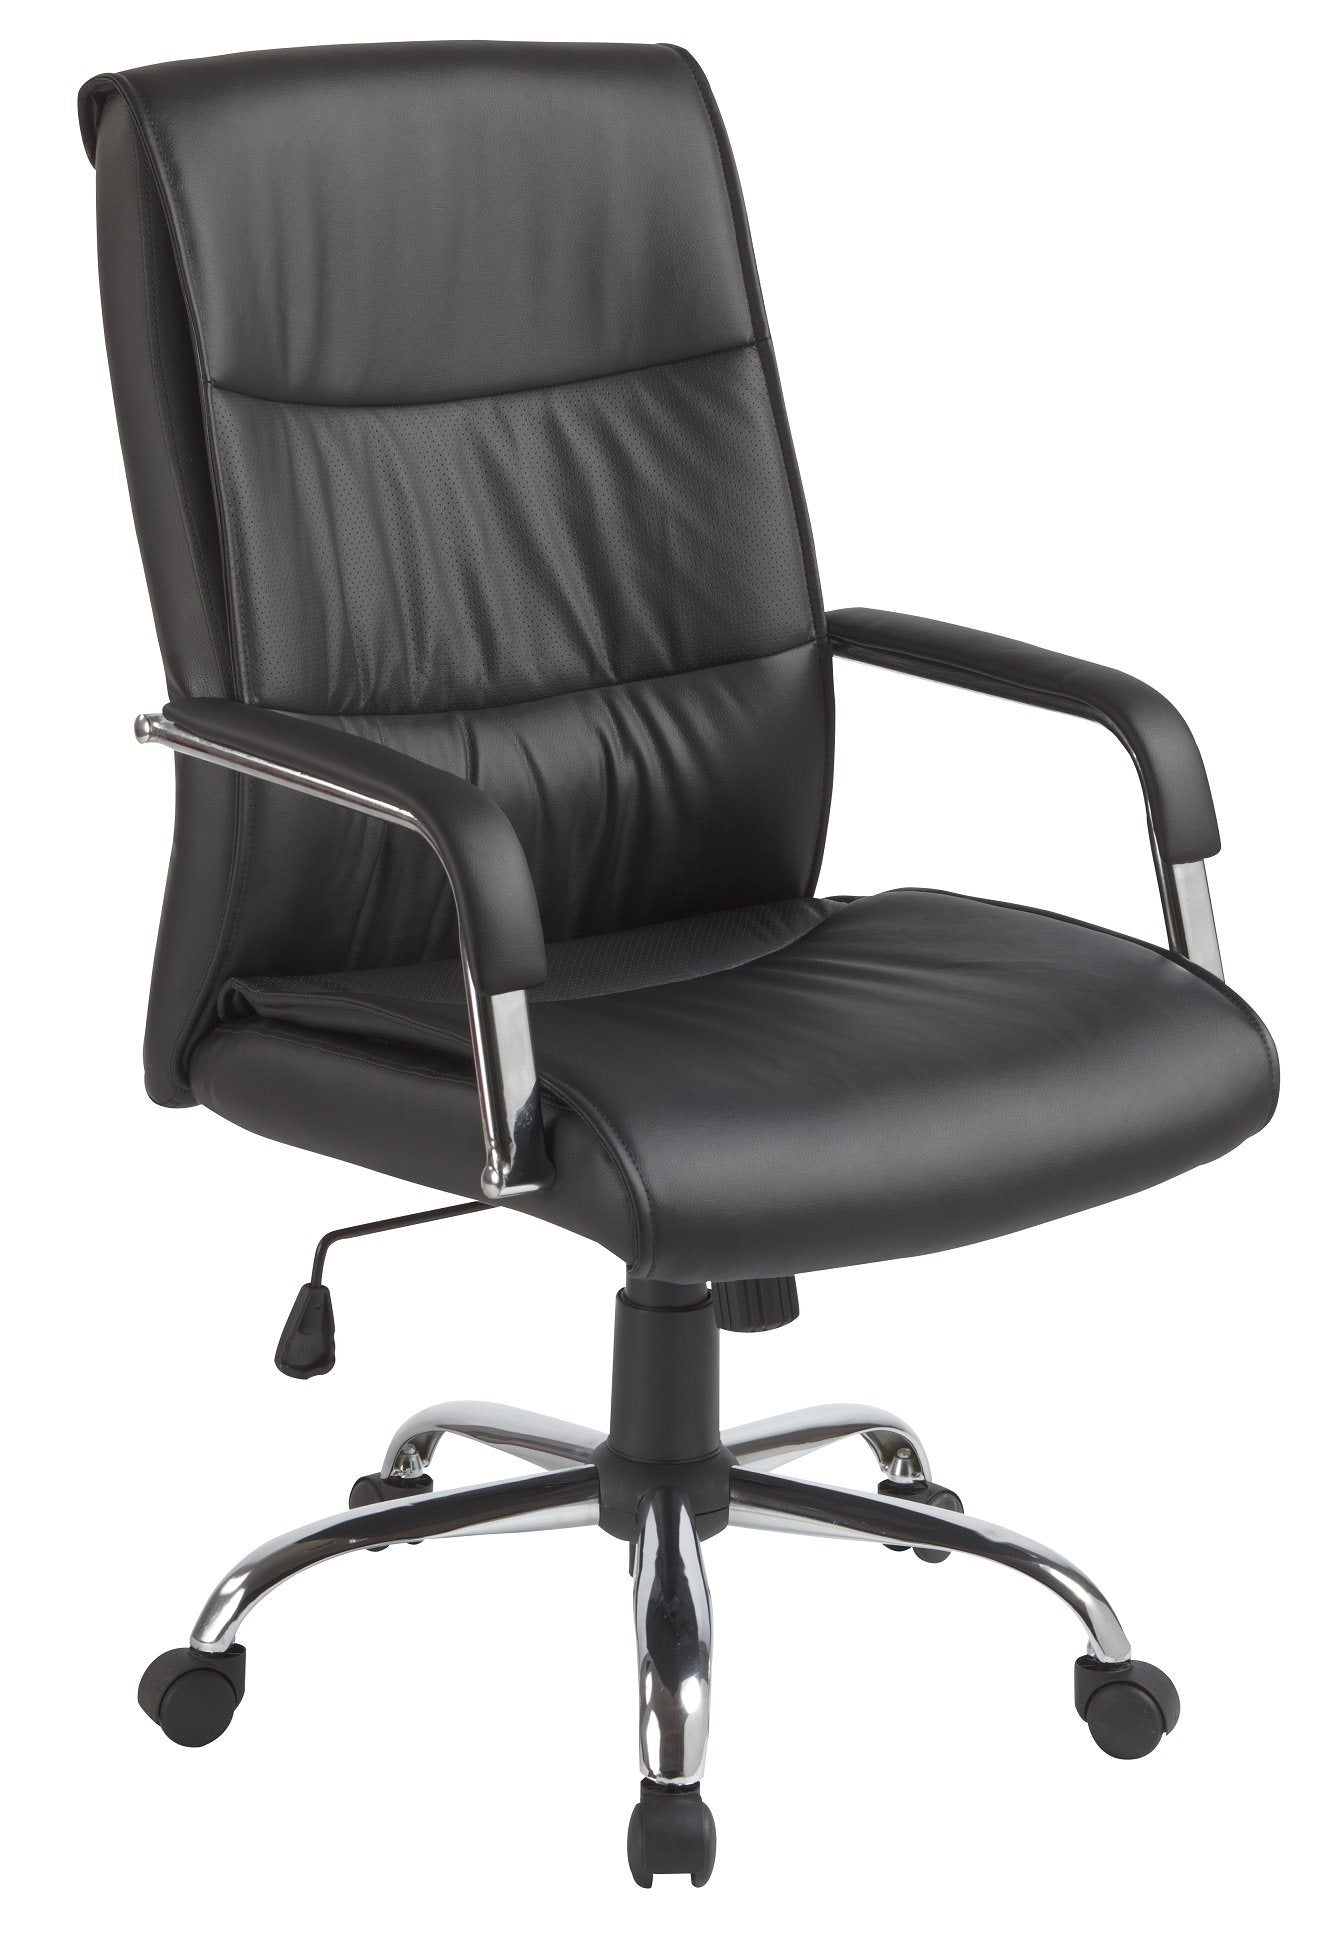 Classic PU Leather Office Chair Executive Padded Black | 360HomeWare